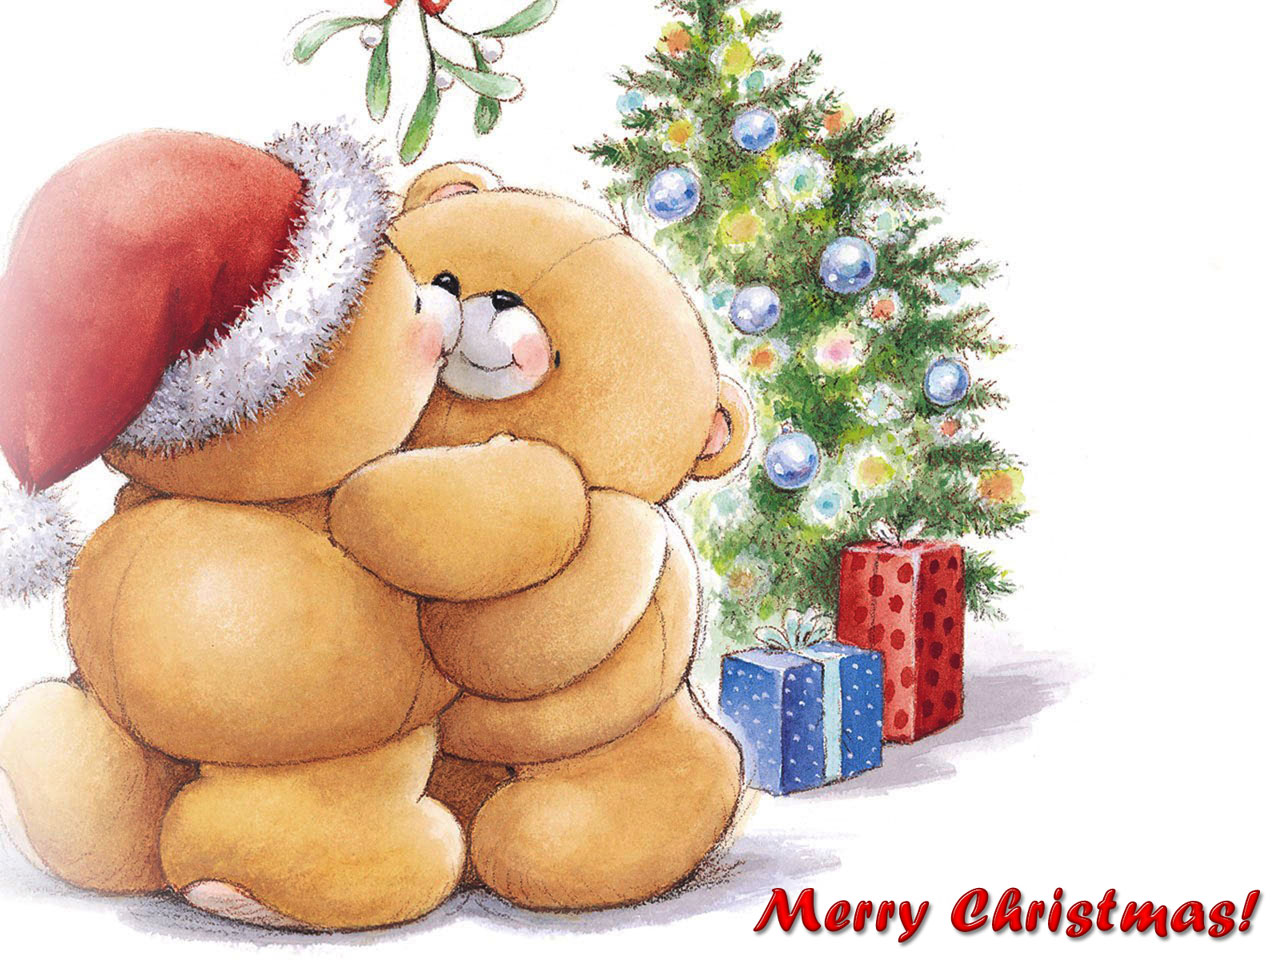 Merry Christmas greetings hd wallpapers and desktop background.